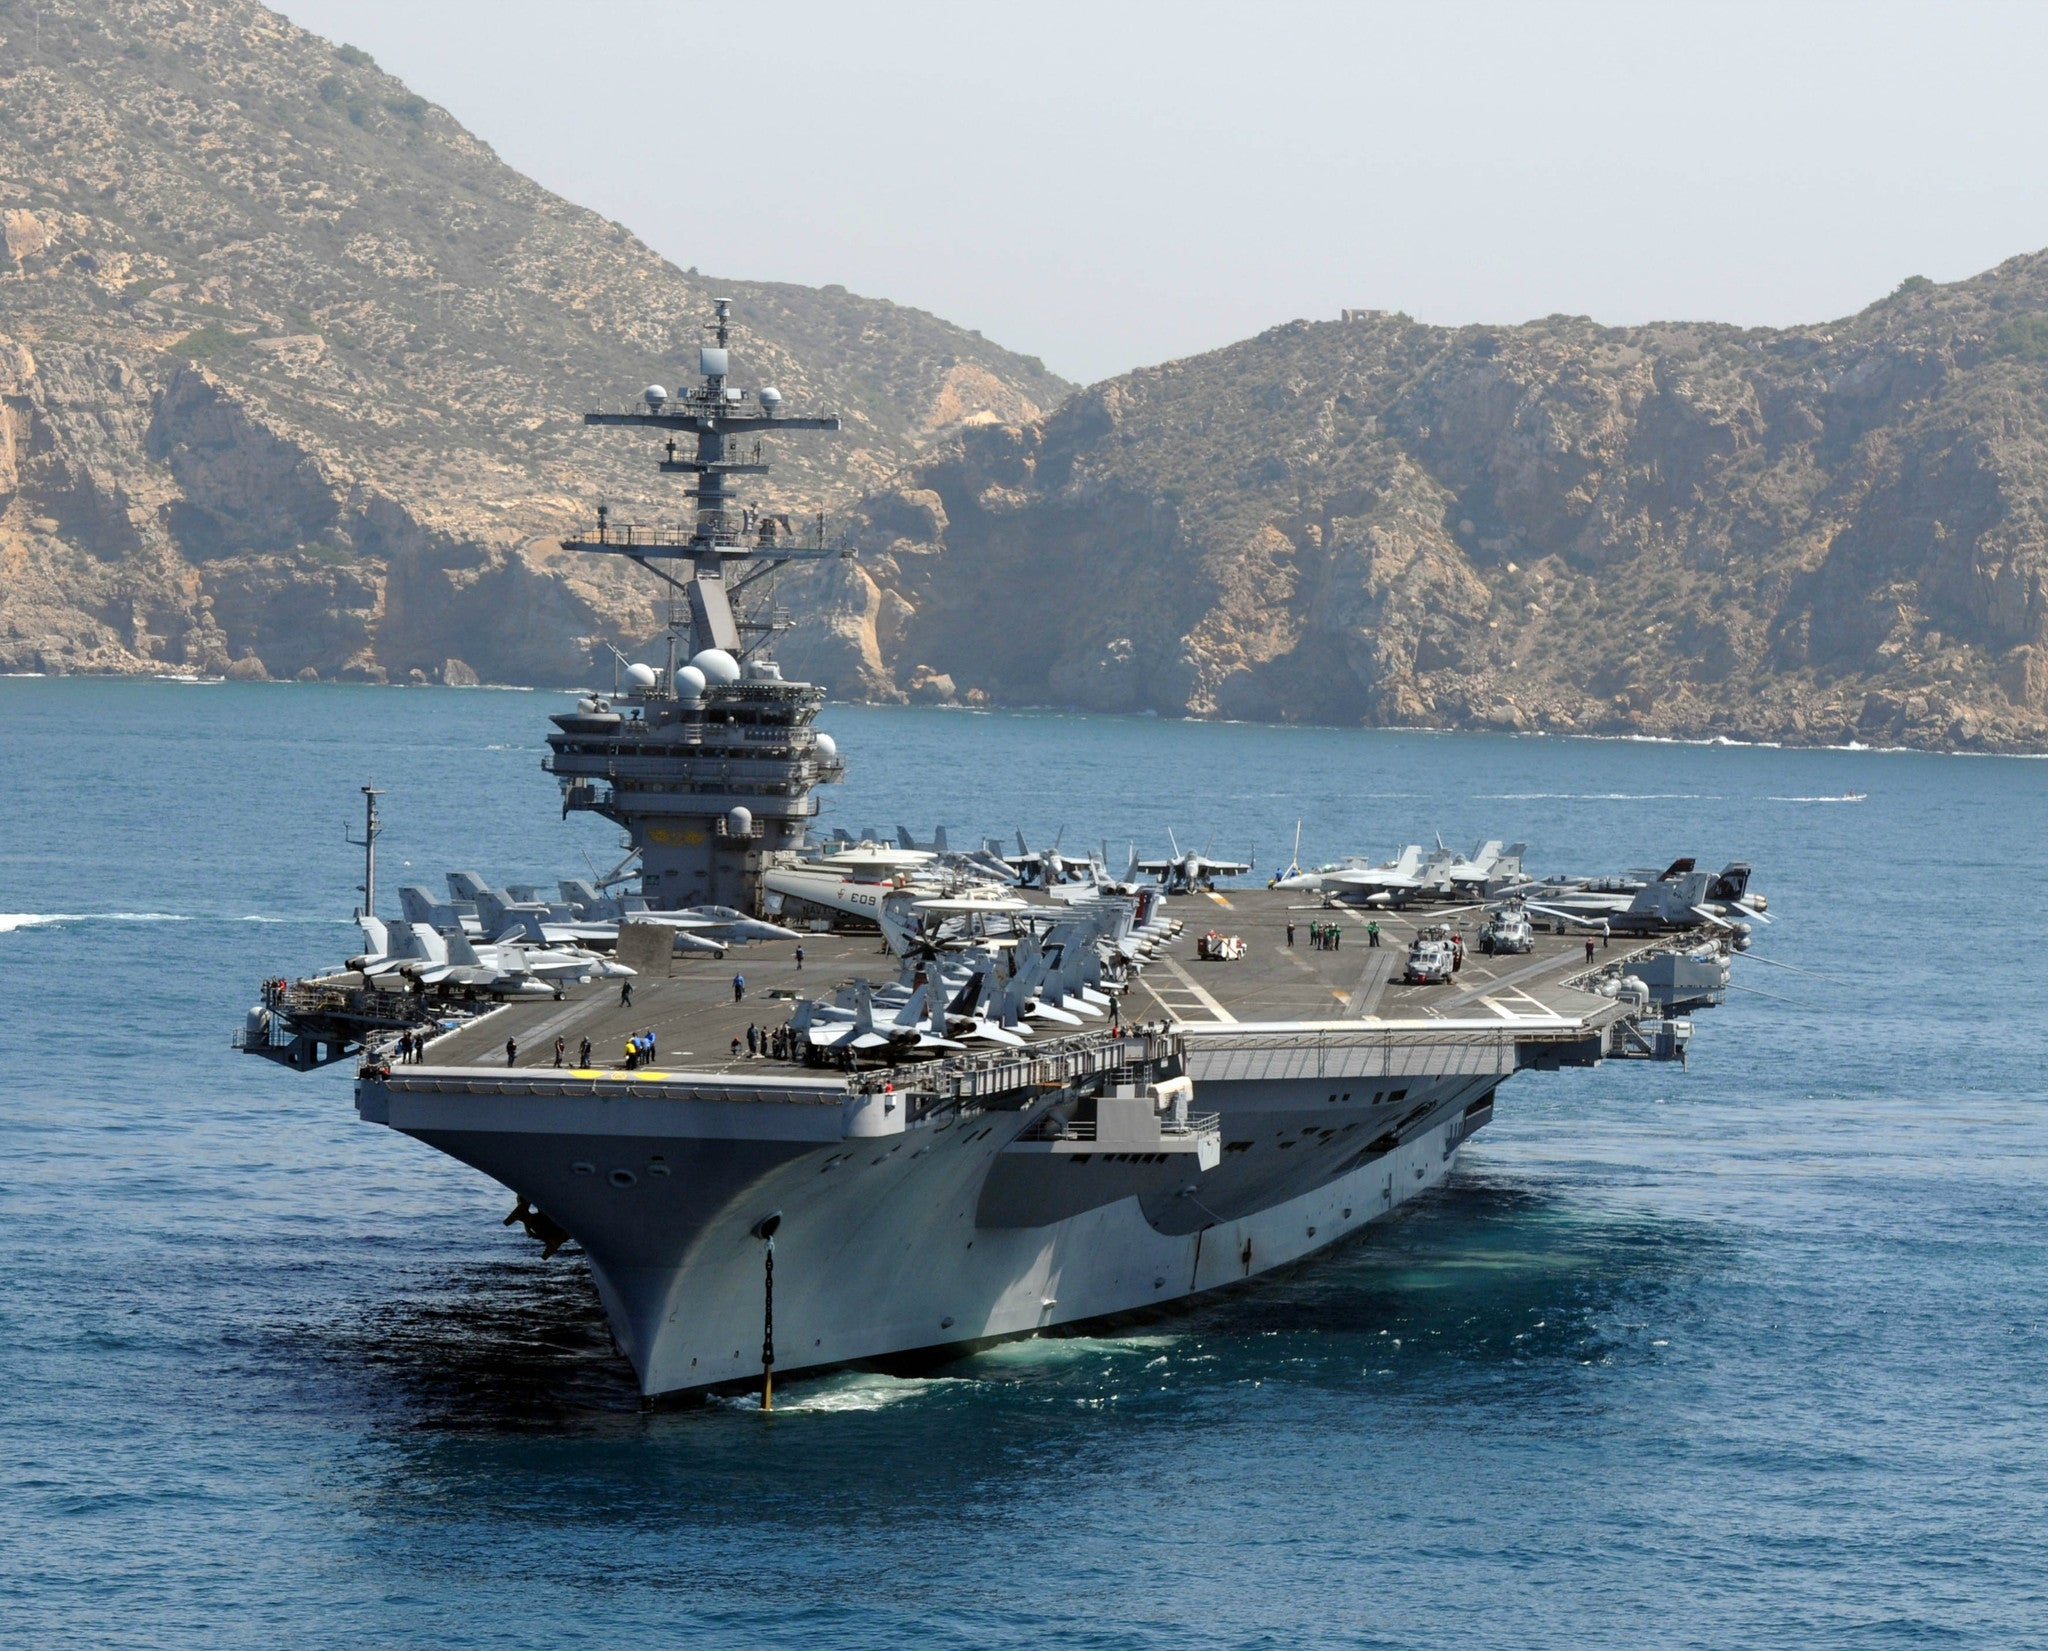 "USS George H.W. Bush CVN-77 Cartagena, Spain June 9, 2011 - 8 x 10"" Photograph"